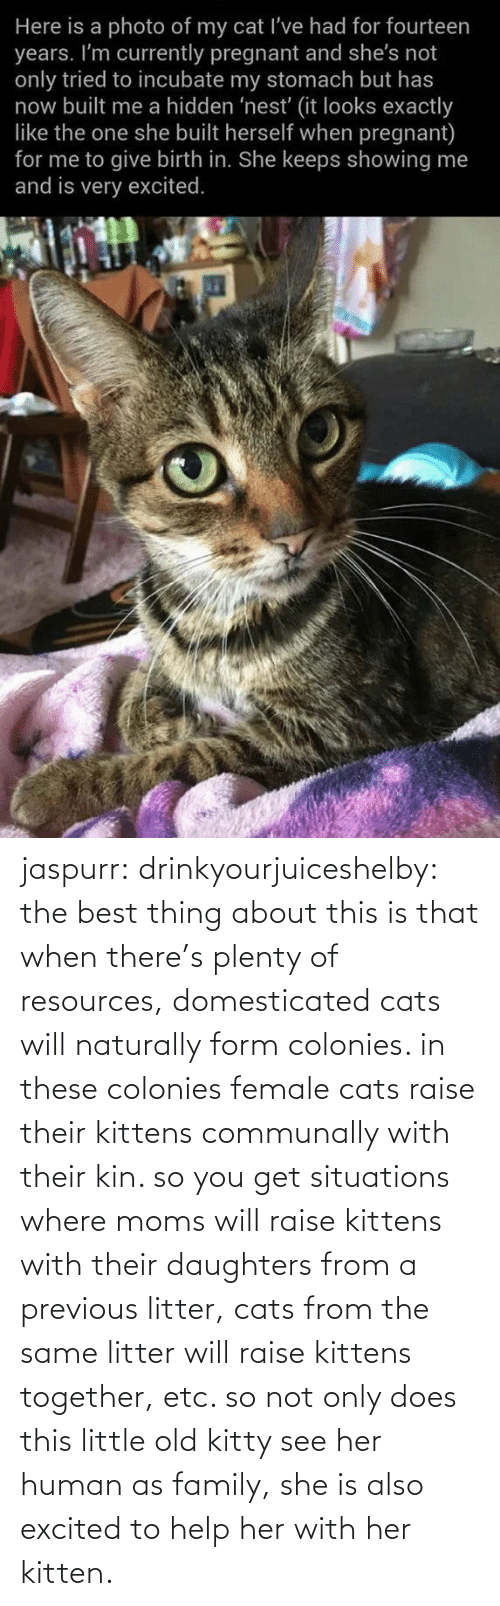 jpg: jaspurr:  drinkyourjuiceshelby:    the best thing about this is that when there's plenty of resources, domesticated cats will naturally form colonies. in these colonies female cats raise their kittens communally with their kin. so you get situations where moms will raise kittens with their daughters from a previous litter, cats from the same litter will raise kittens together, etc. so not only does this little old kitty see her human as family, she is also excited to help her with her kitten.